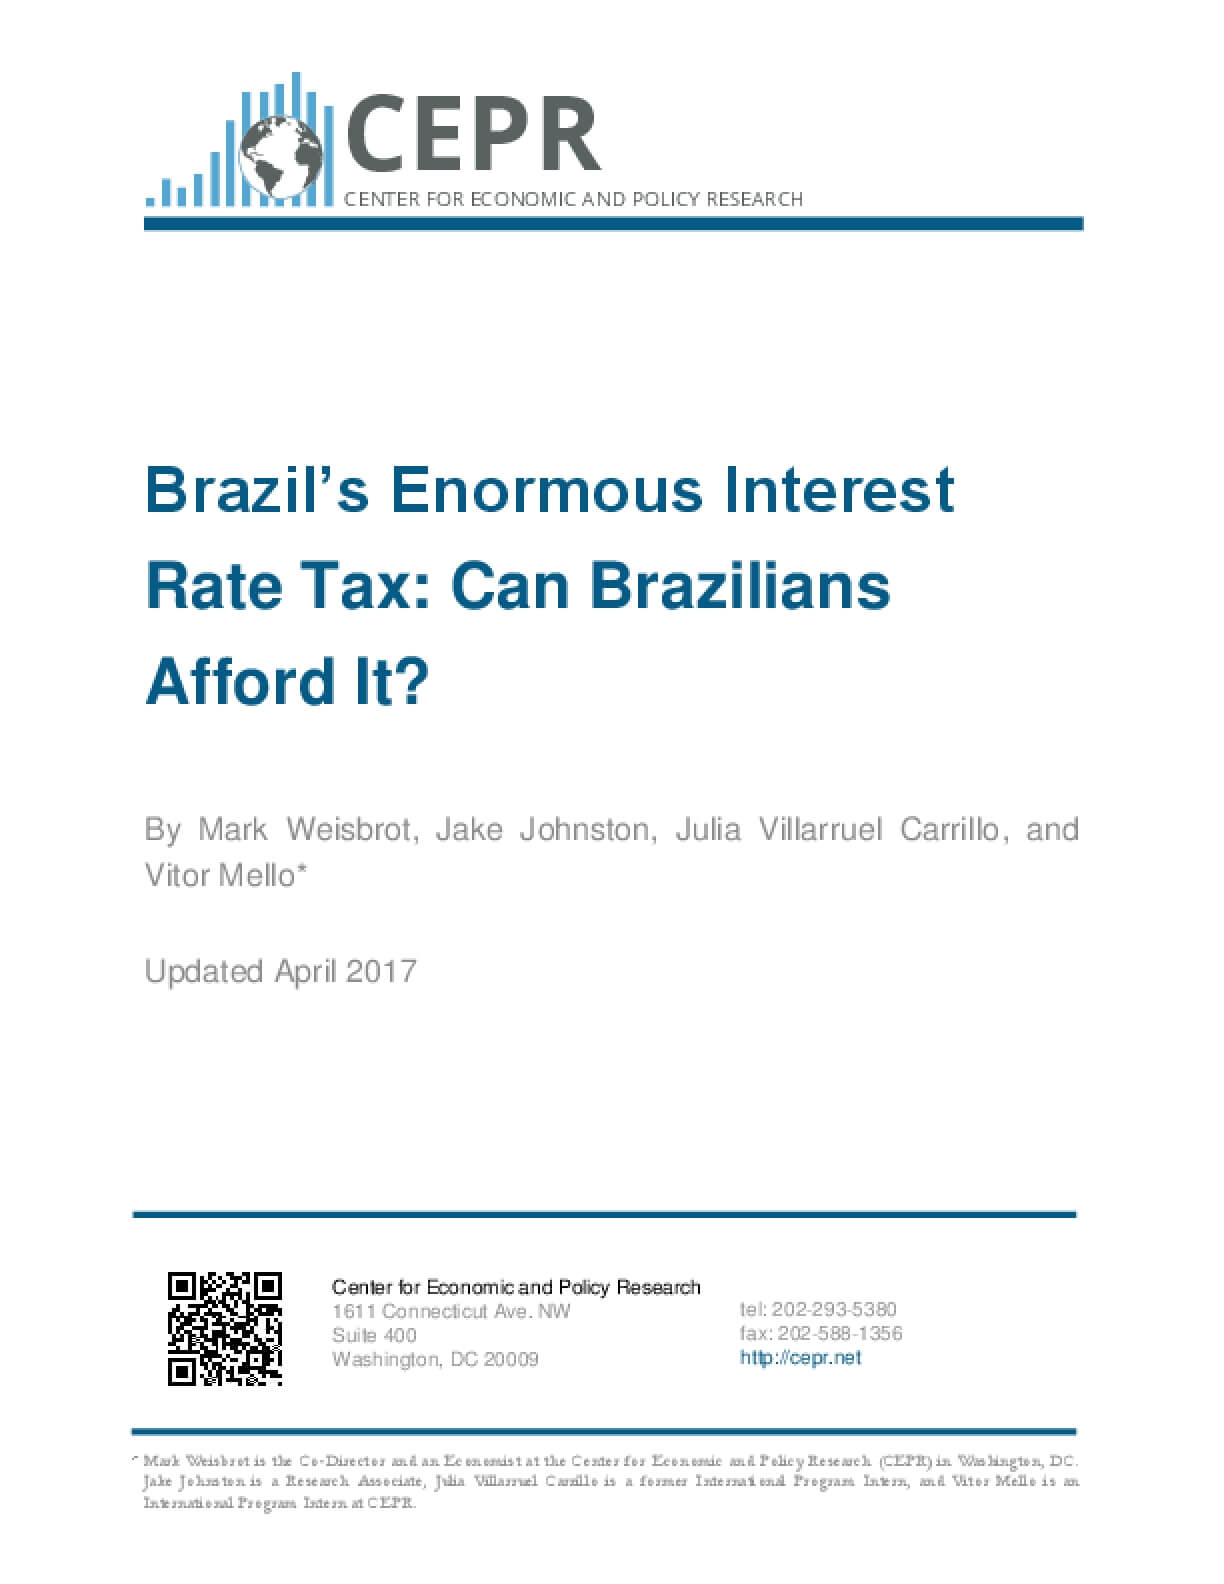 Brazil's Enormous Interest Rate Tax: Can Brazilians Afford It?